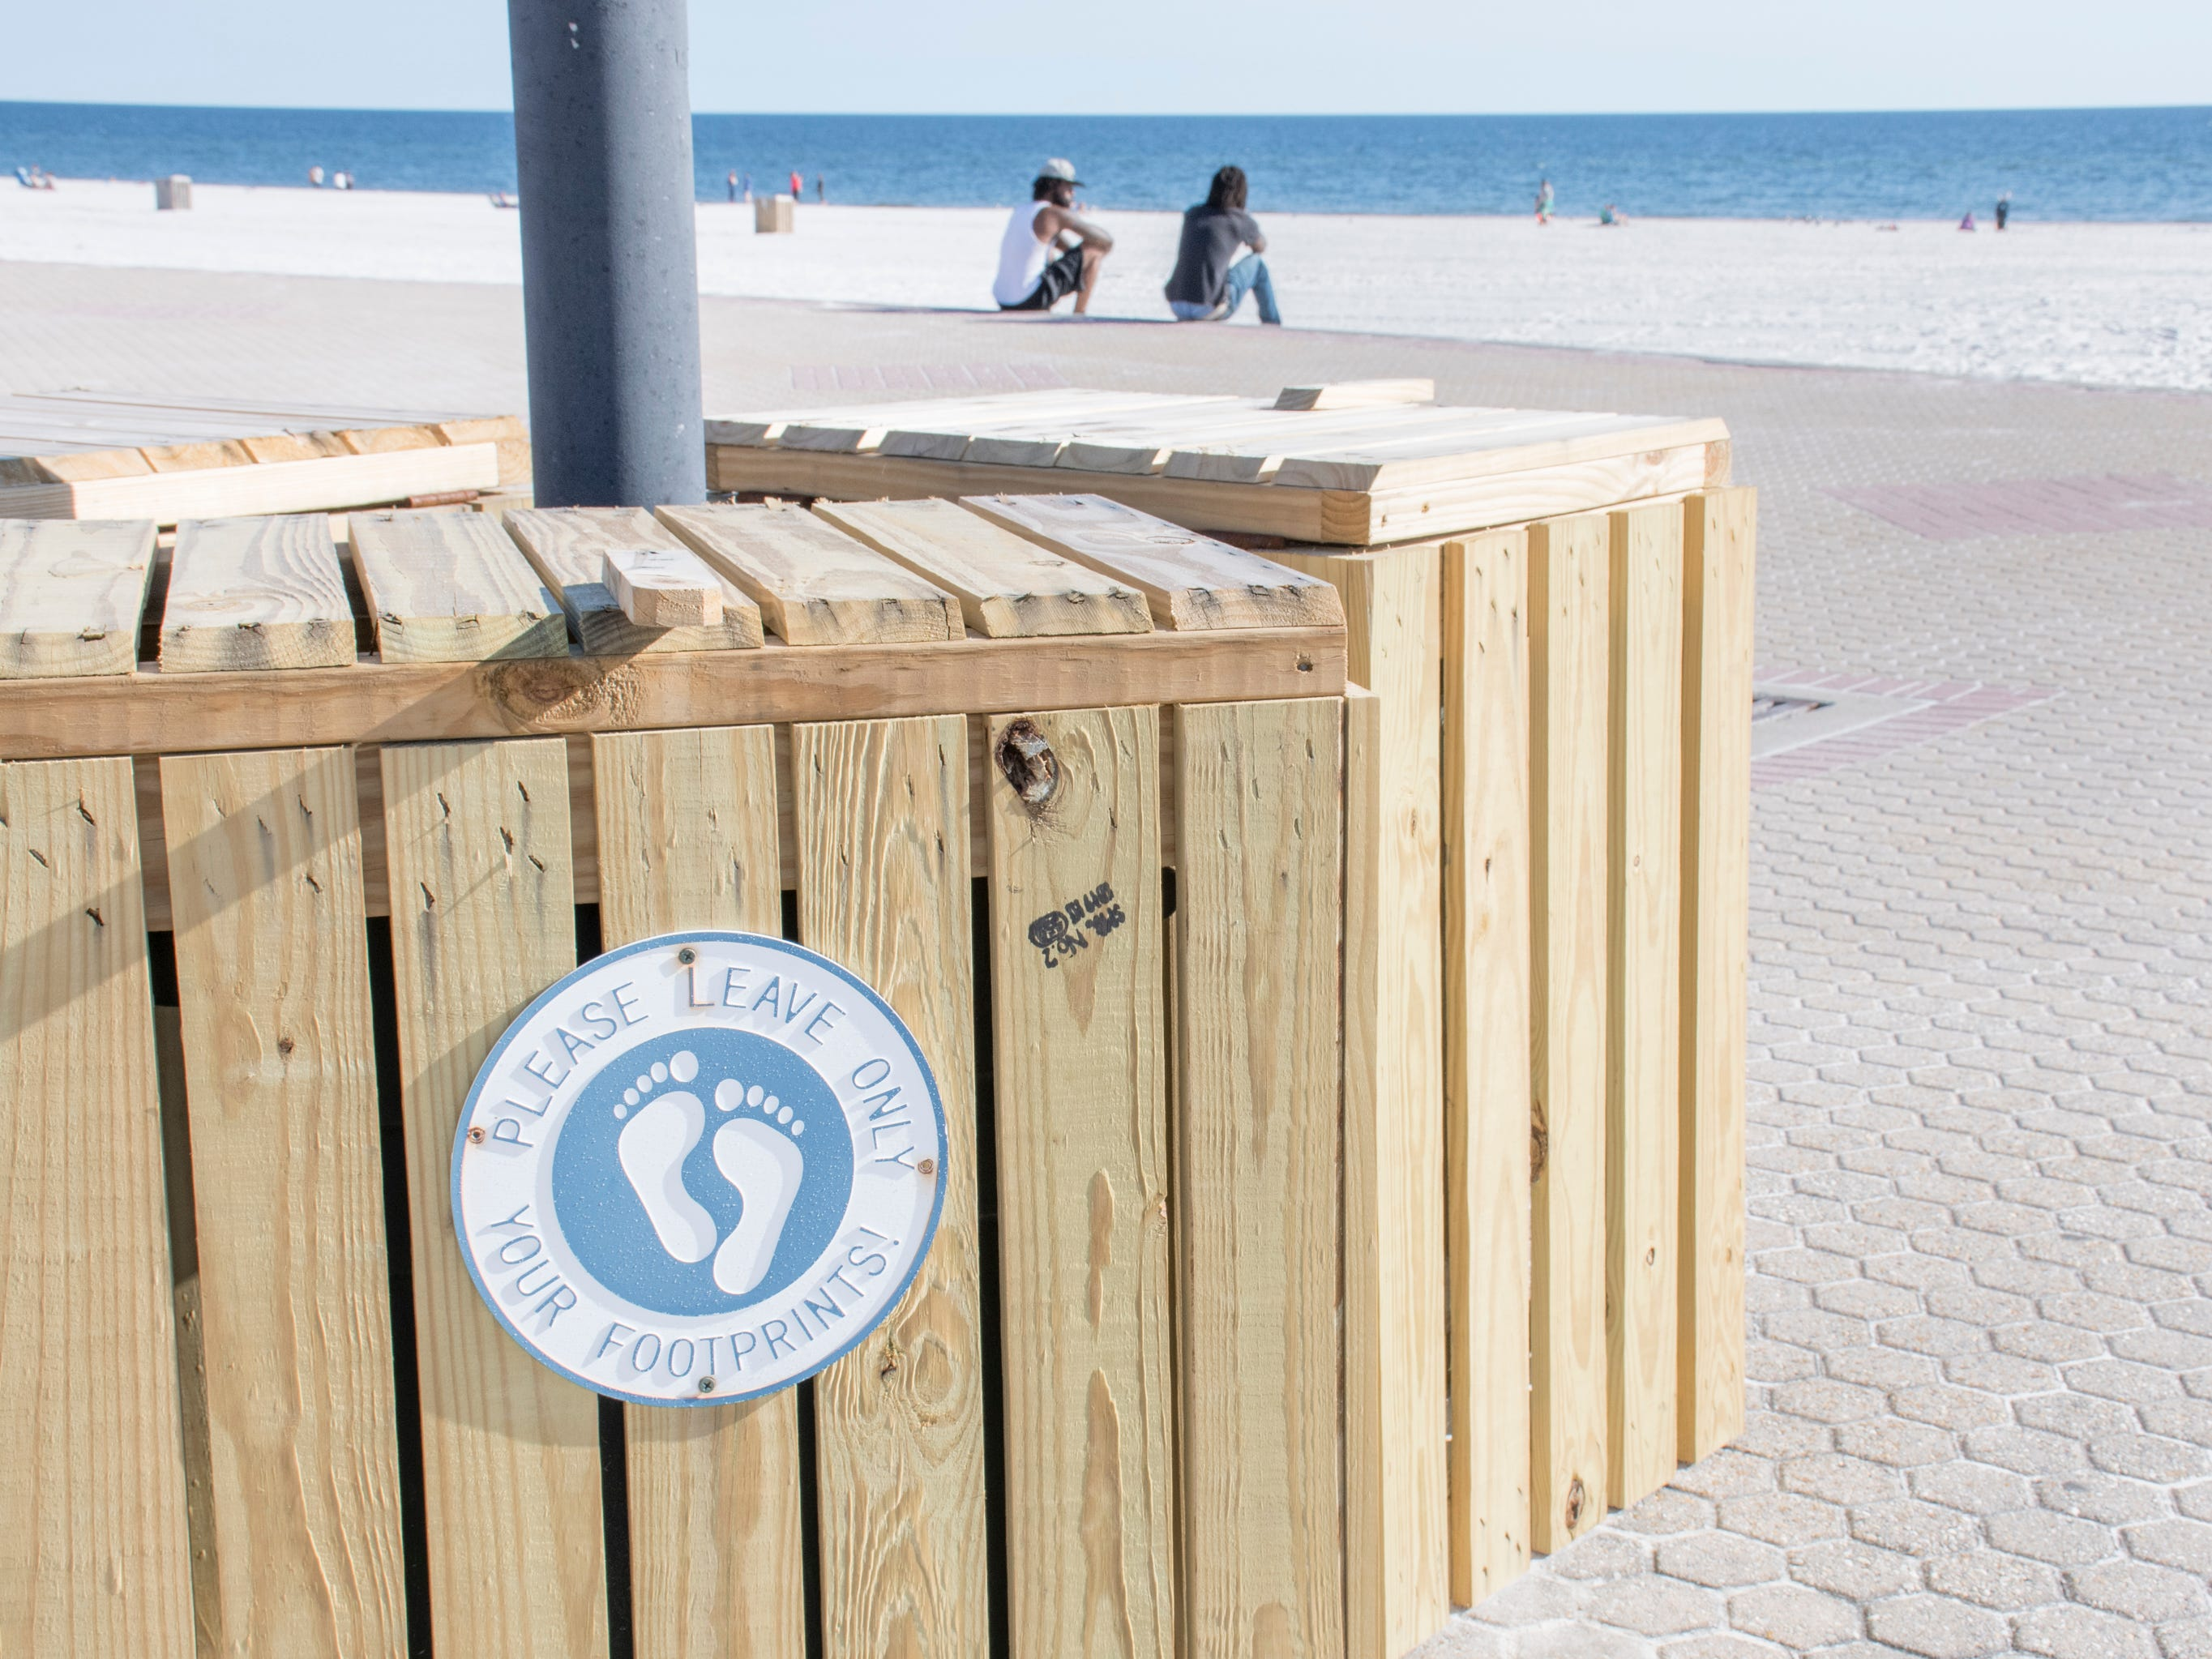 Garbage can signs remind people not to litter along Casino Beach in Pensacola on Tuesday, January 8, 2019.  The Florida Legislature is proposing a bill that would ban smoking on all beaches in the state.